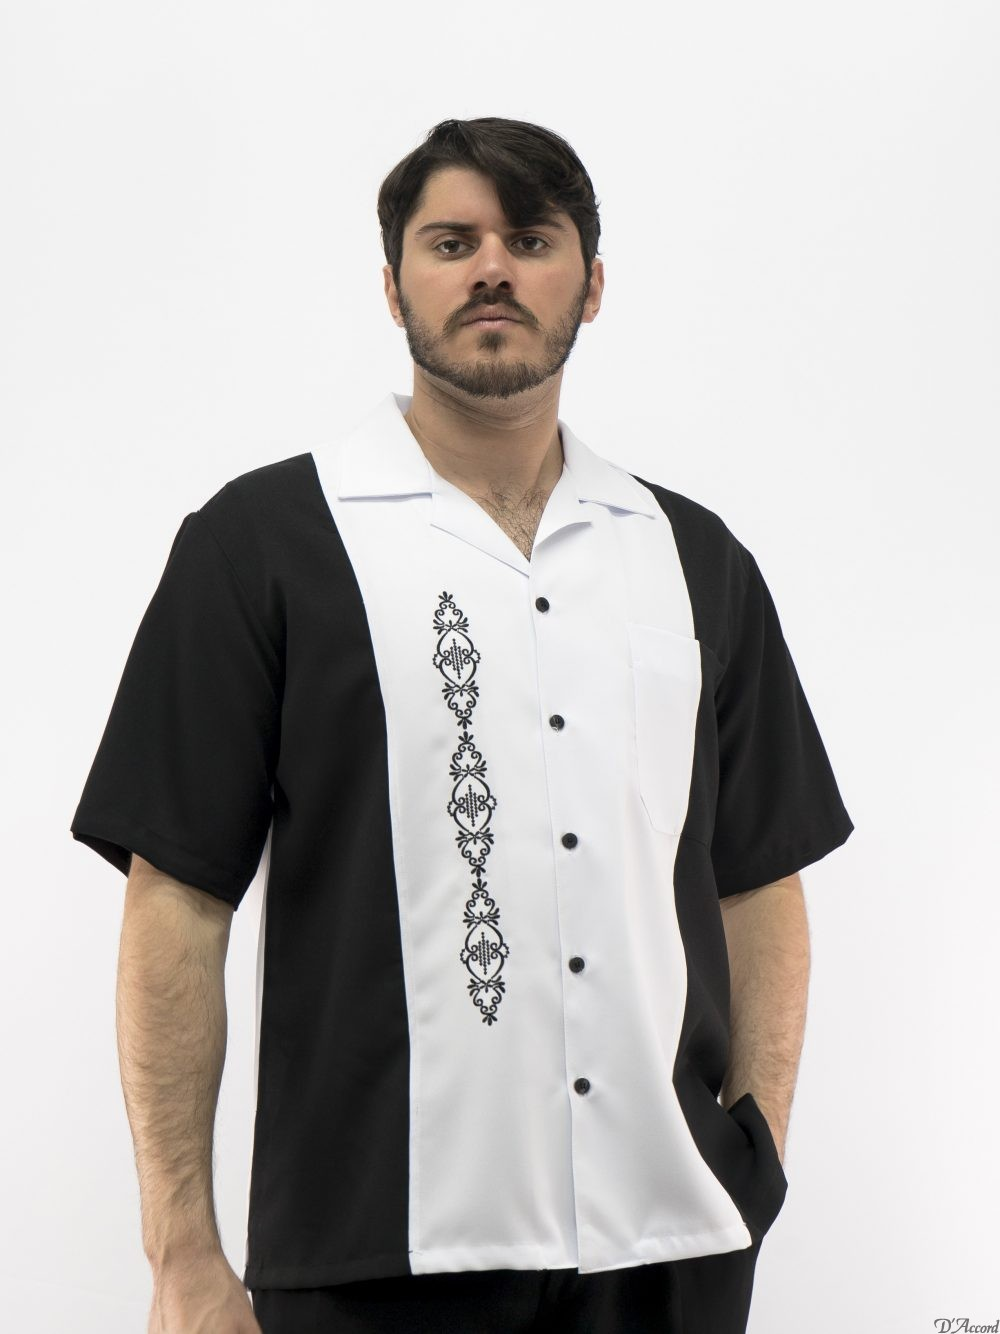 c8abe0832f Cuban Retro Shirt Men s Casual Shirt White Embroidered Made in Miami USA  D Accord 5878